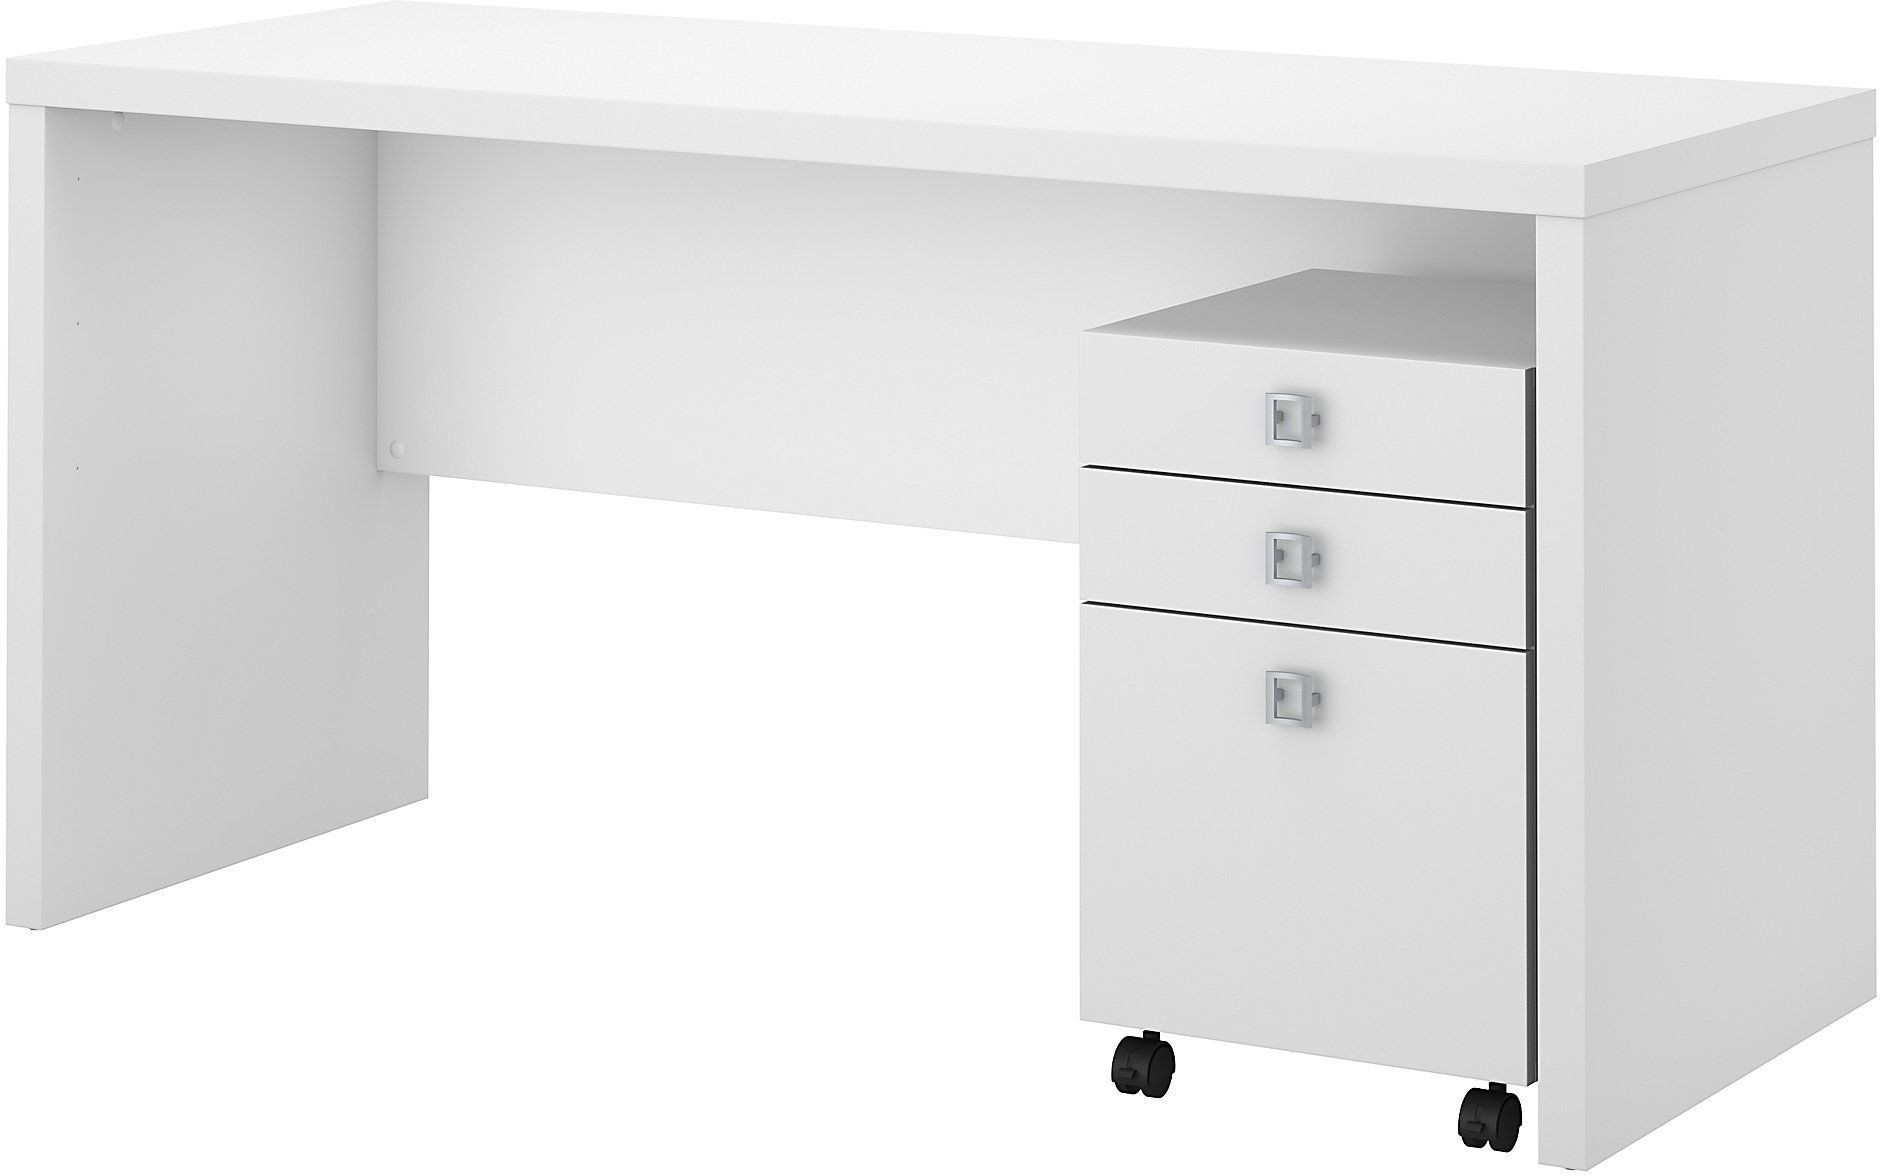 Echo pure white credenza desk with mobile file cabinet from kathy ireland by bush coleman - Mobile credenza ...